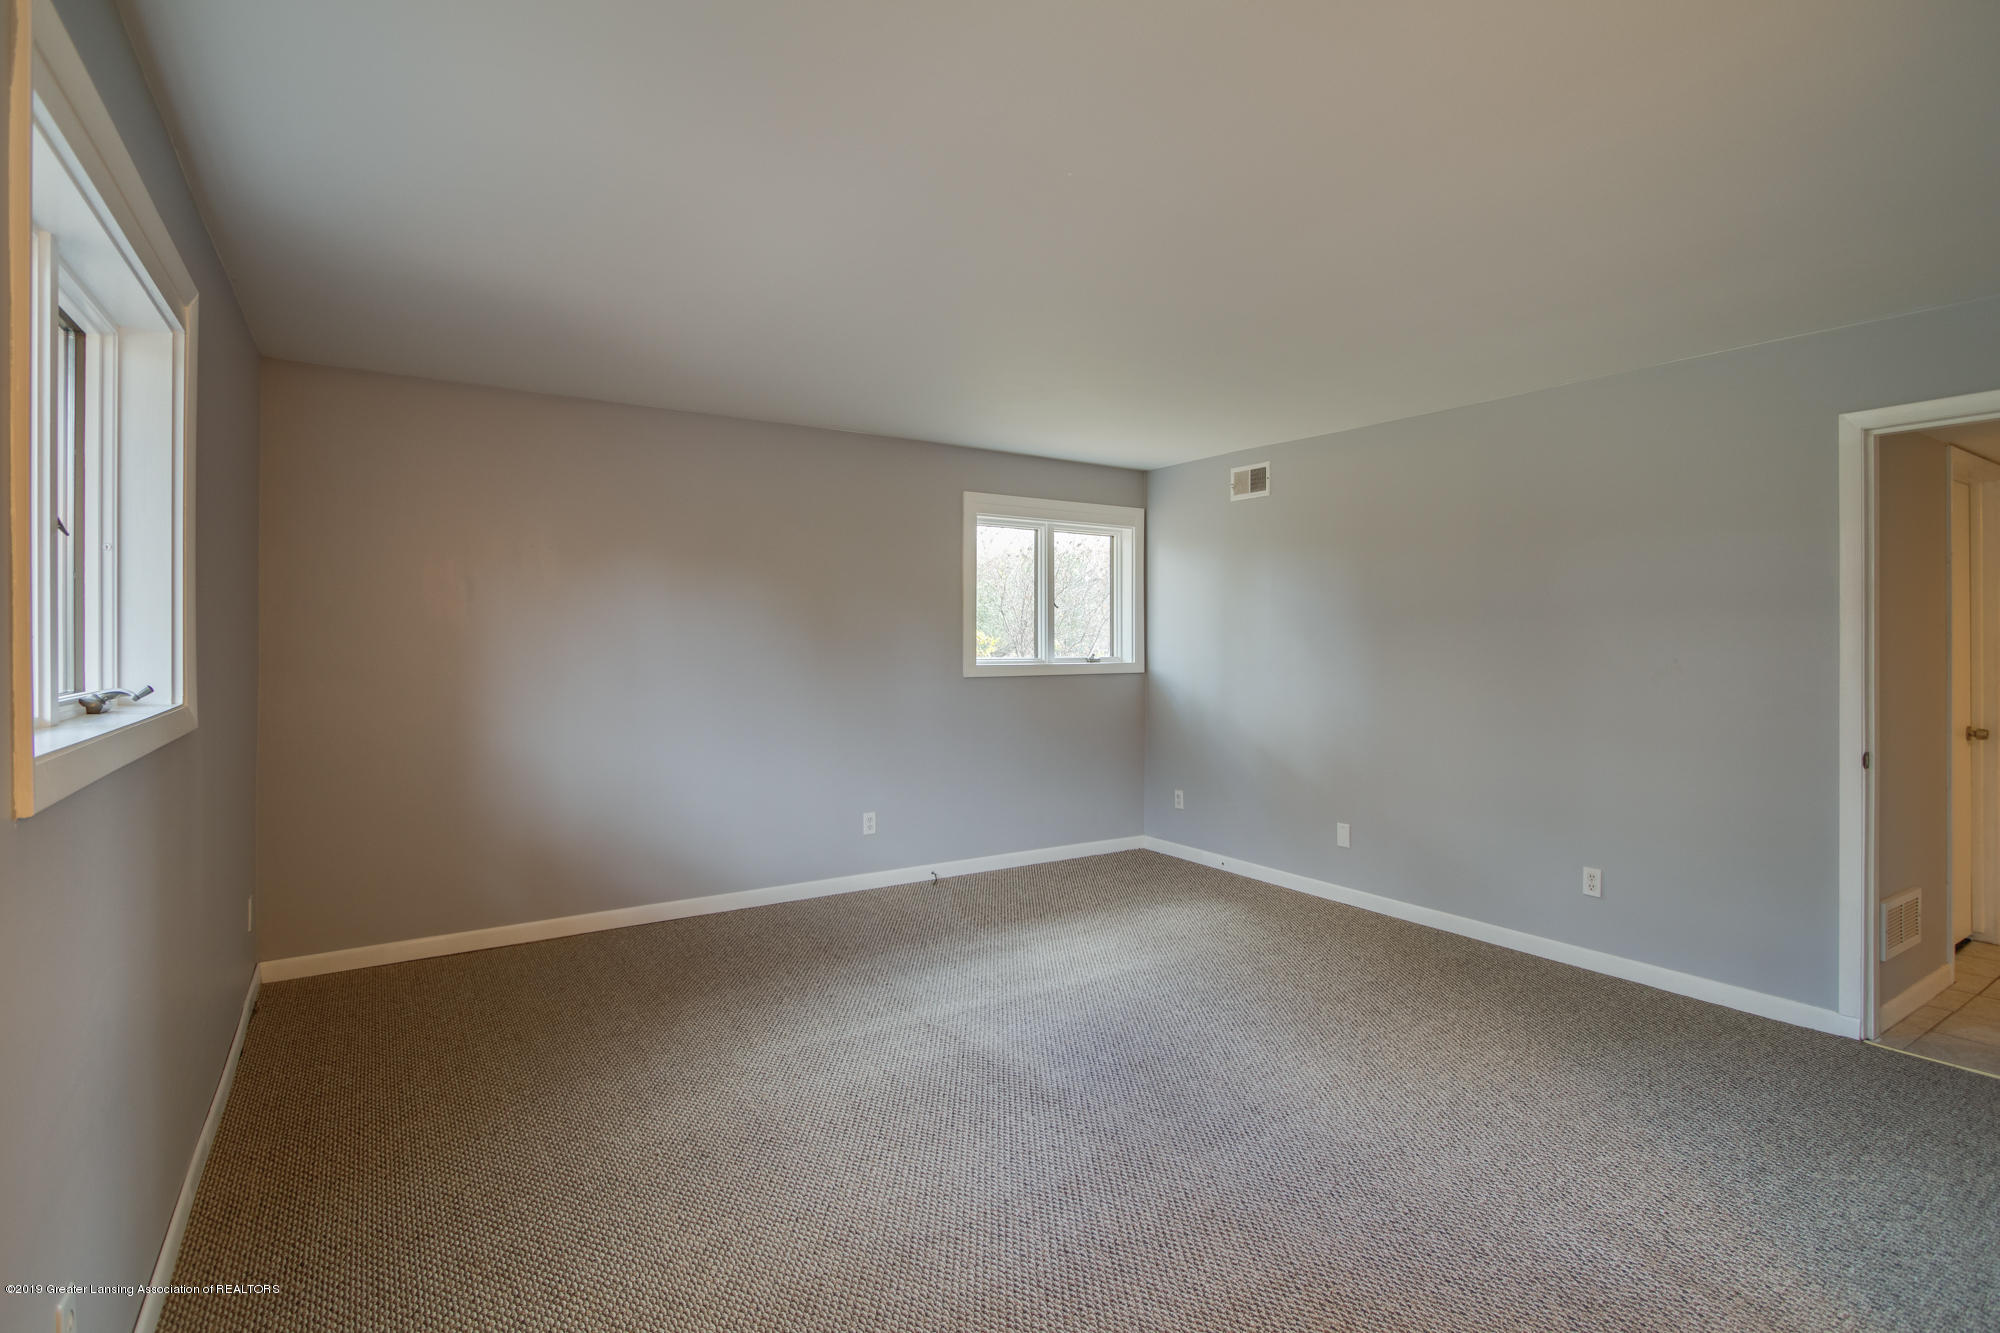 500 Woodingham Dr APT 2 - 500_Woodingham_JEFF-7 - 8